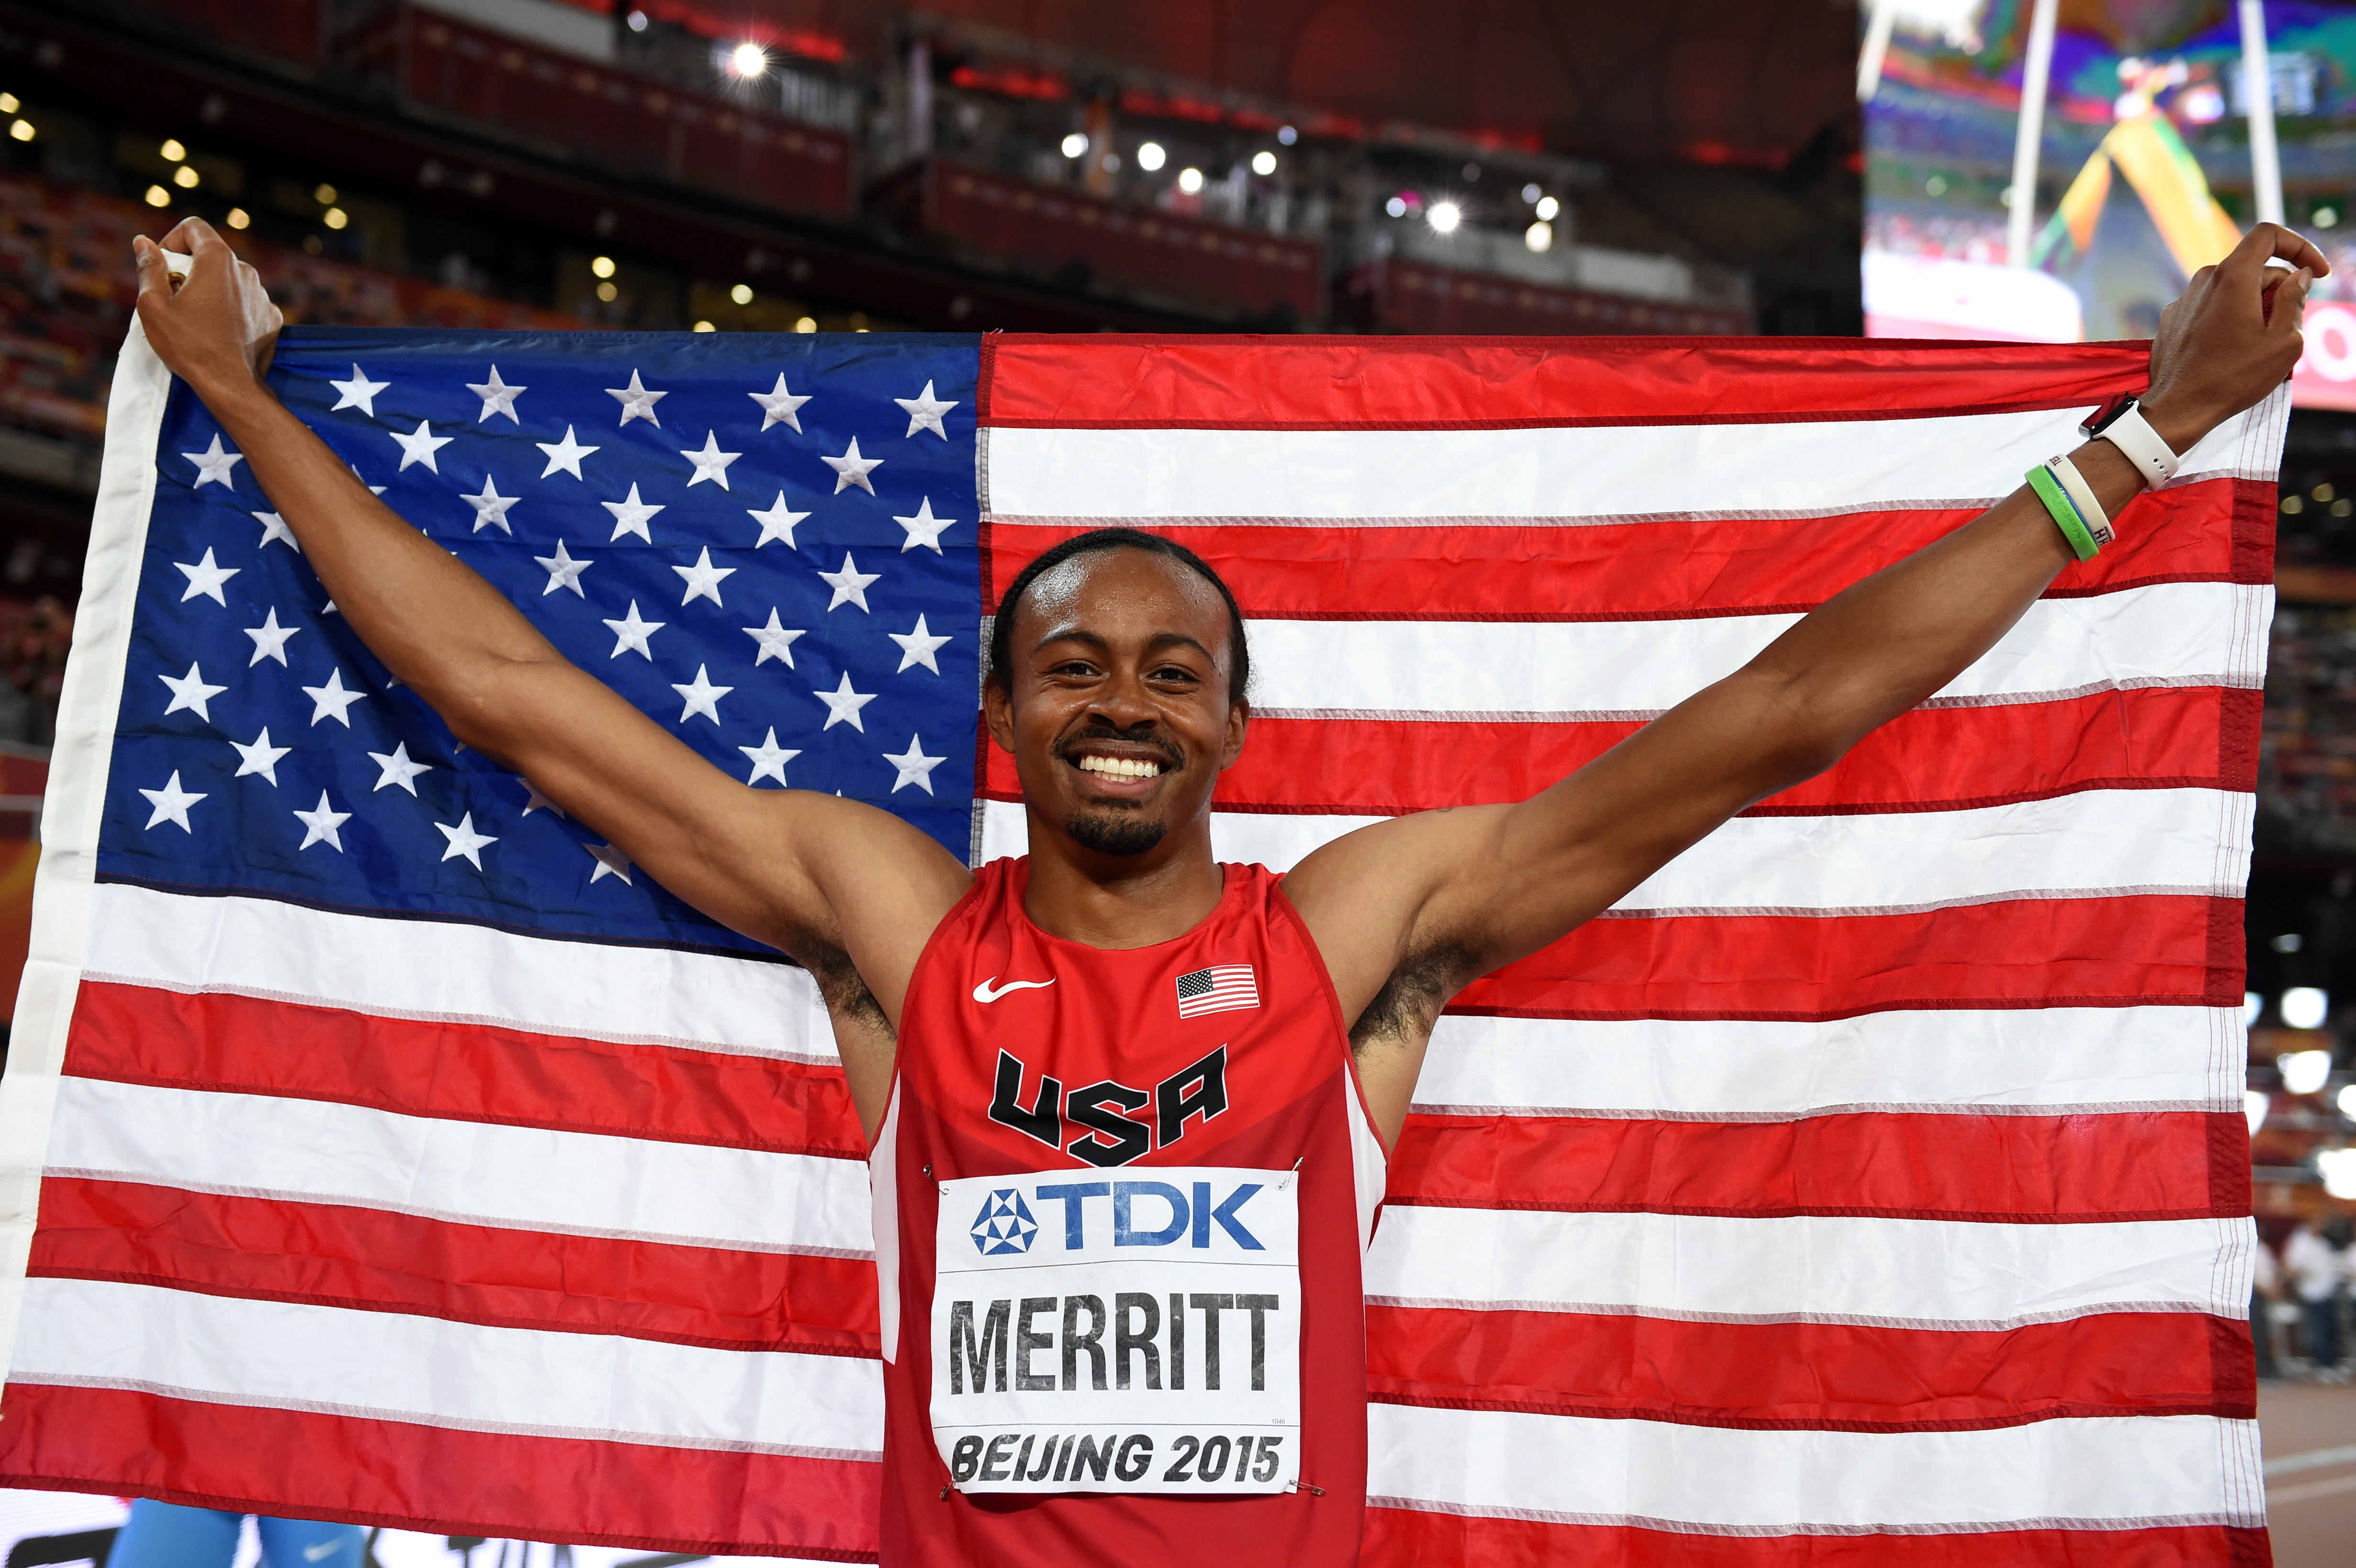 "Bronze medallist USA's Aries Merritt poses with his national flag after the final of the men's 110 metres hurdles athletics event at the 2015 IAAF World Championships at the ""Bird's Nest"" National Stadium in Beijing on August 28, 2015.  AFP PHOTO / FRANCK FIFE"